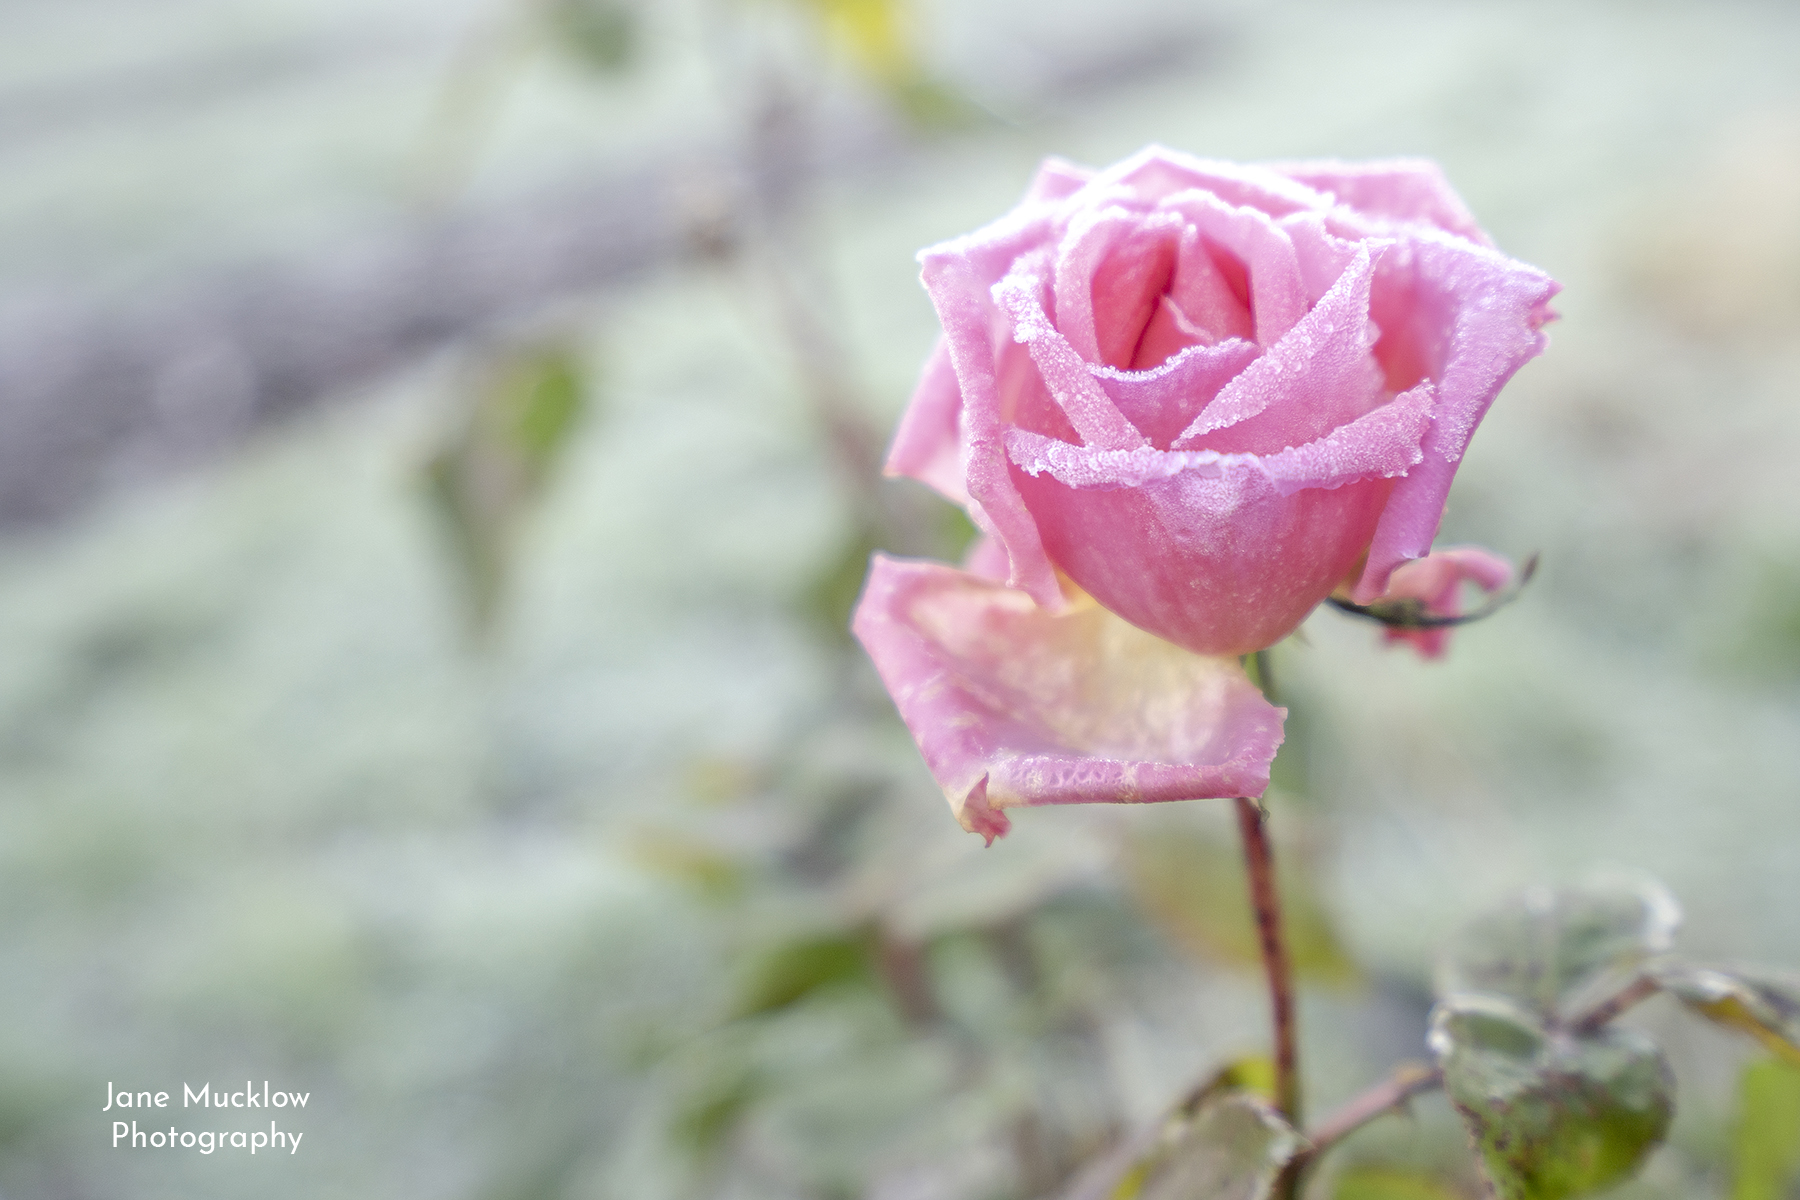 Photo of a frosty pink rose by Jane Mucklow